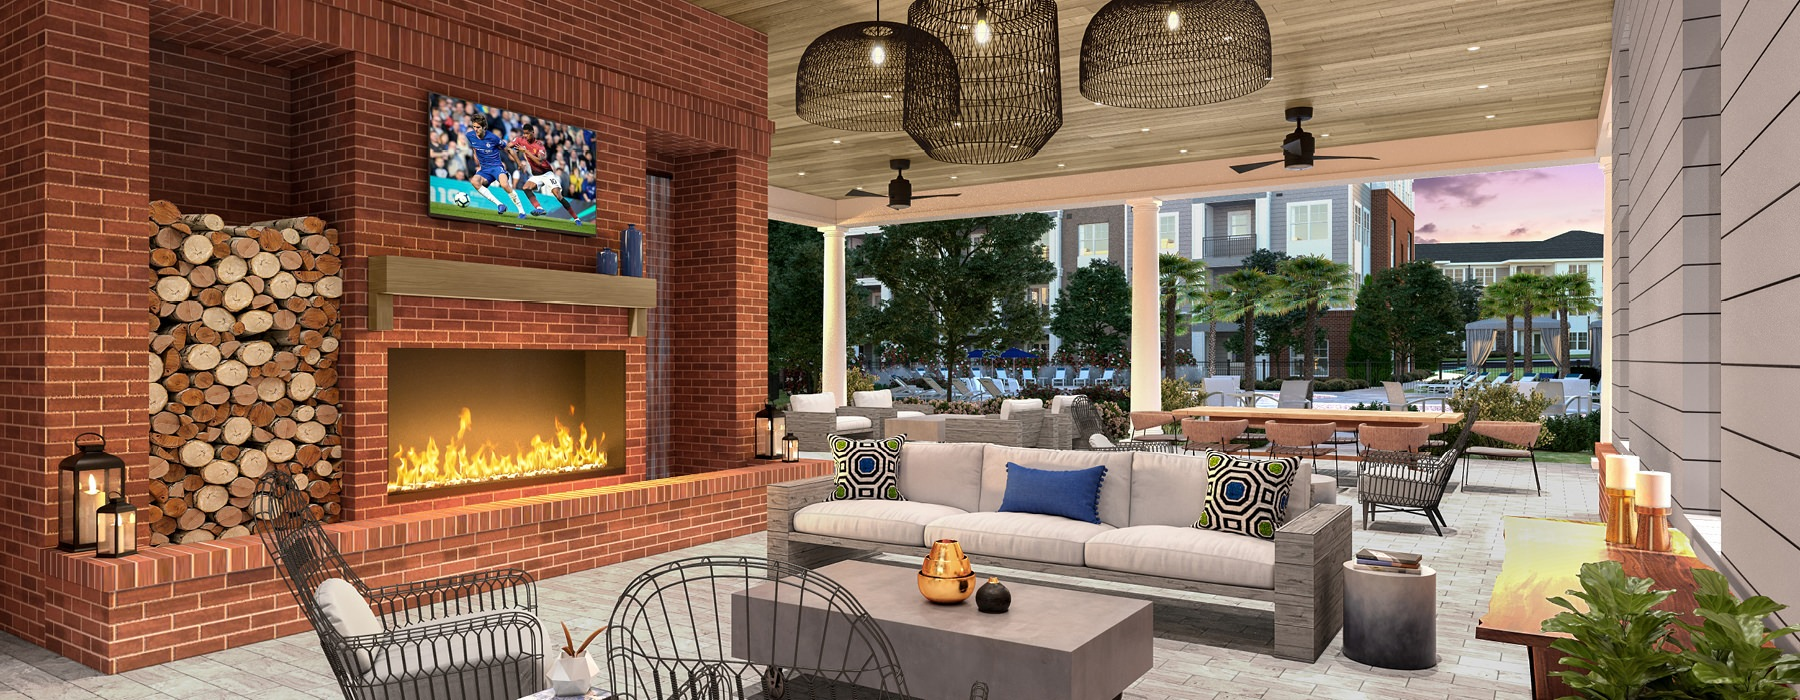 outdoor pavilion with fire place and recessed lighting fixtures